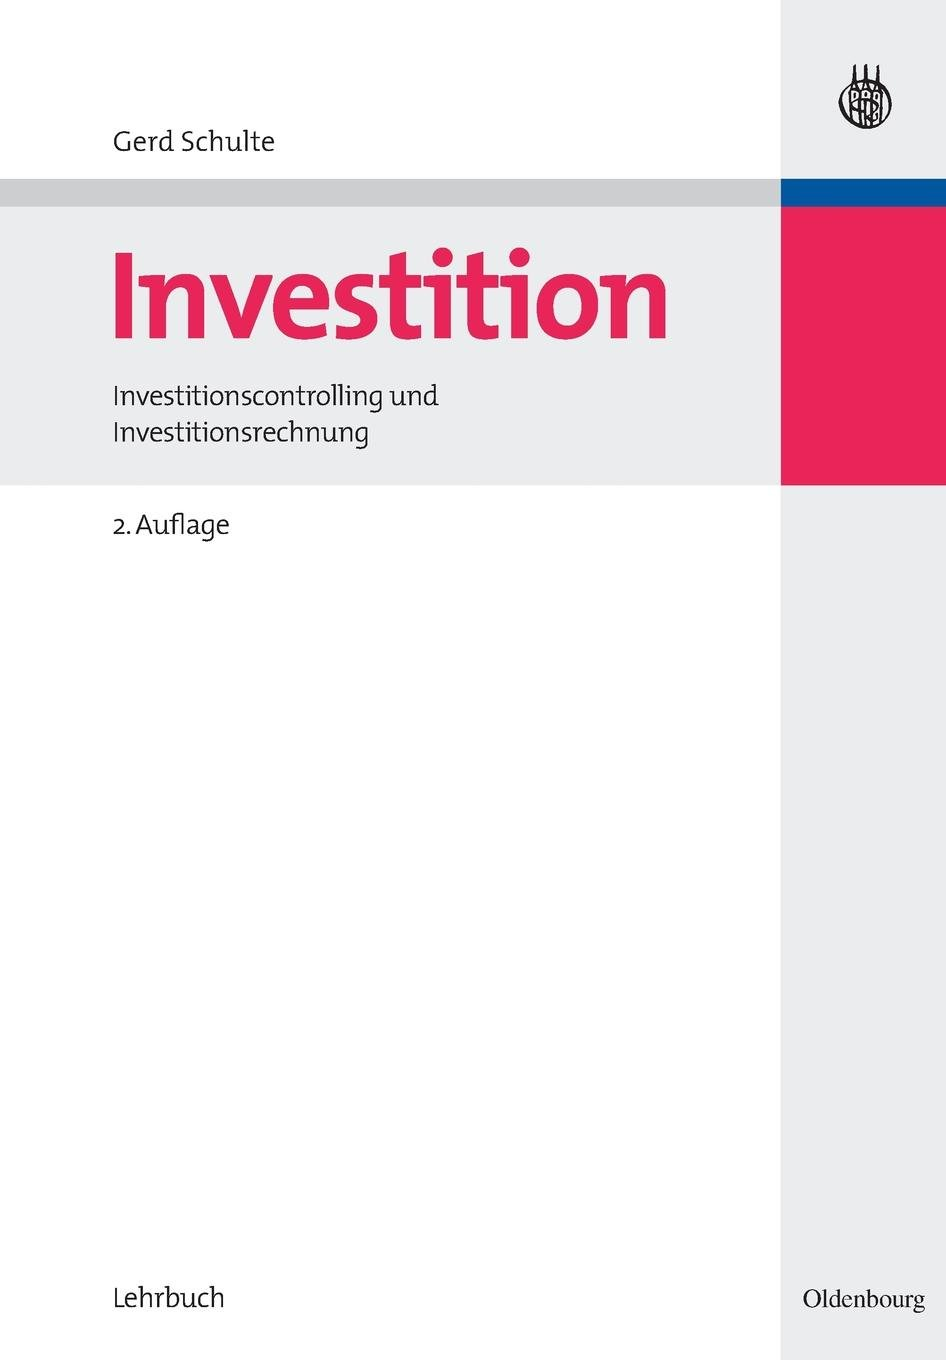 Investition: Investitionscontrolling und Investitionsrechnung: Investitionscontrolling und Investitionsrechnung